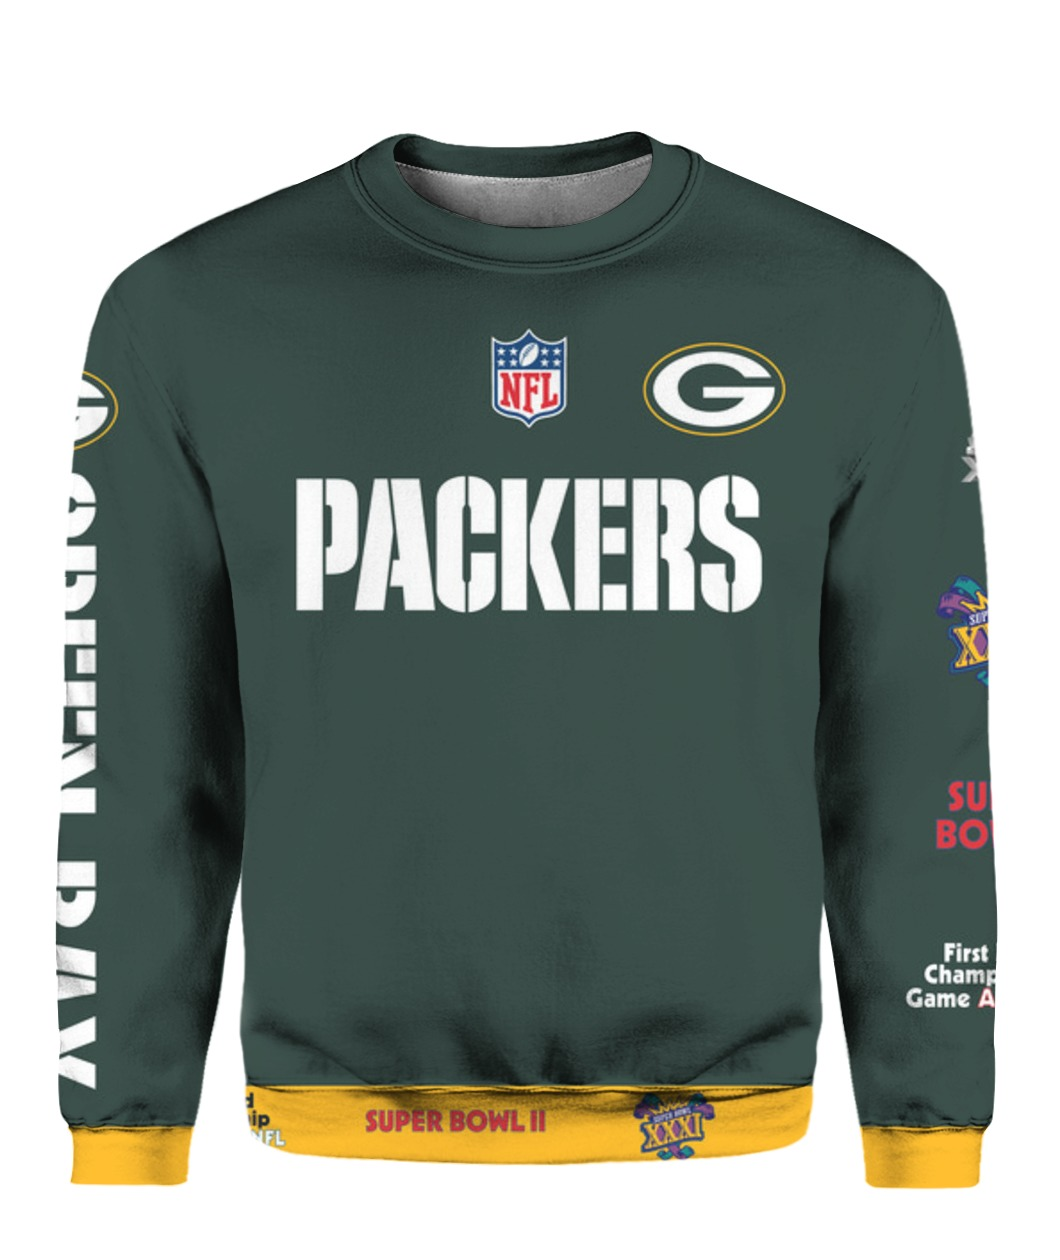 Stand for the flag kneel for the cross green bay packers all over print sweatshirt